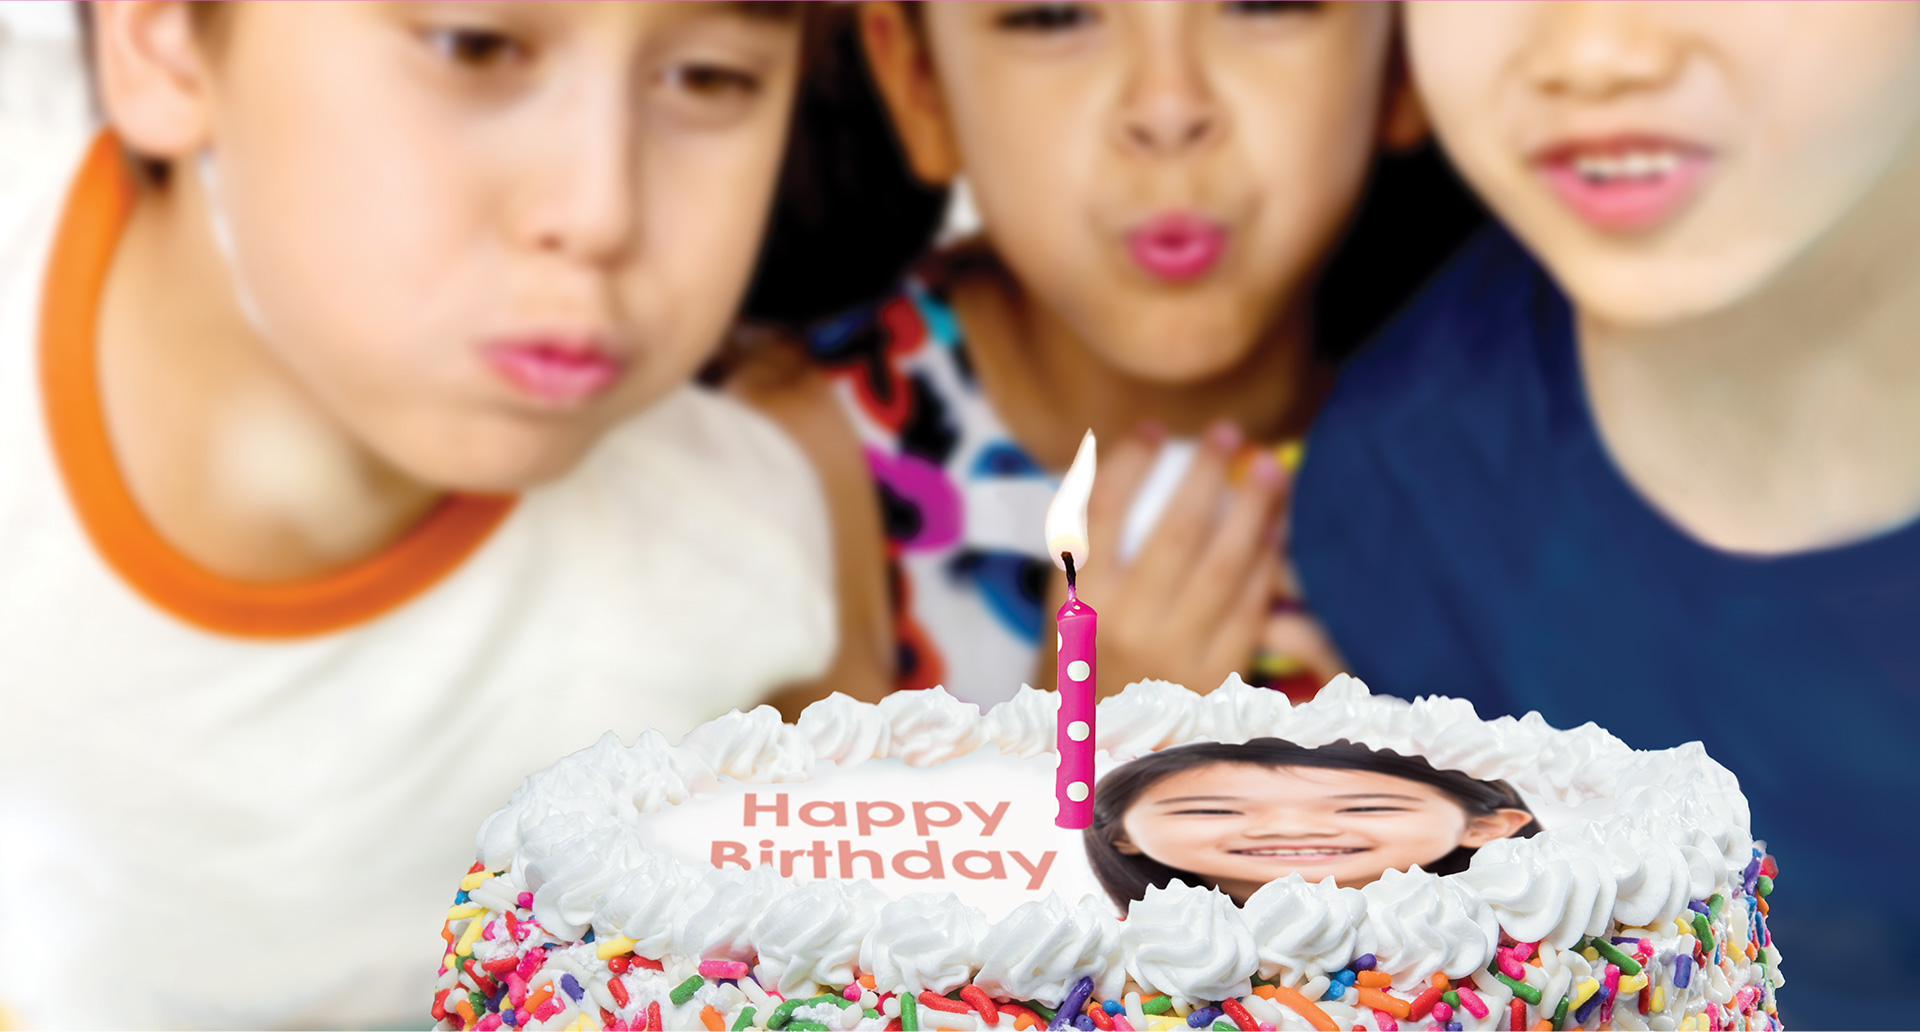 Three children blowing out a birthday candle on top of a Menchie's frozen yogurt cake